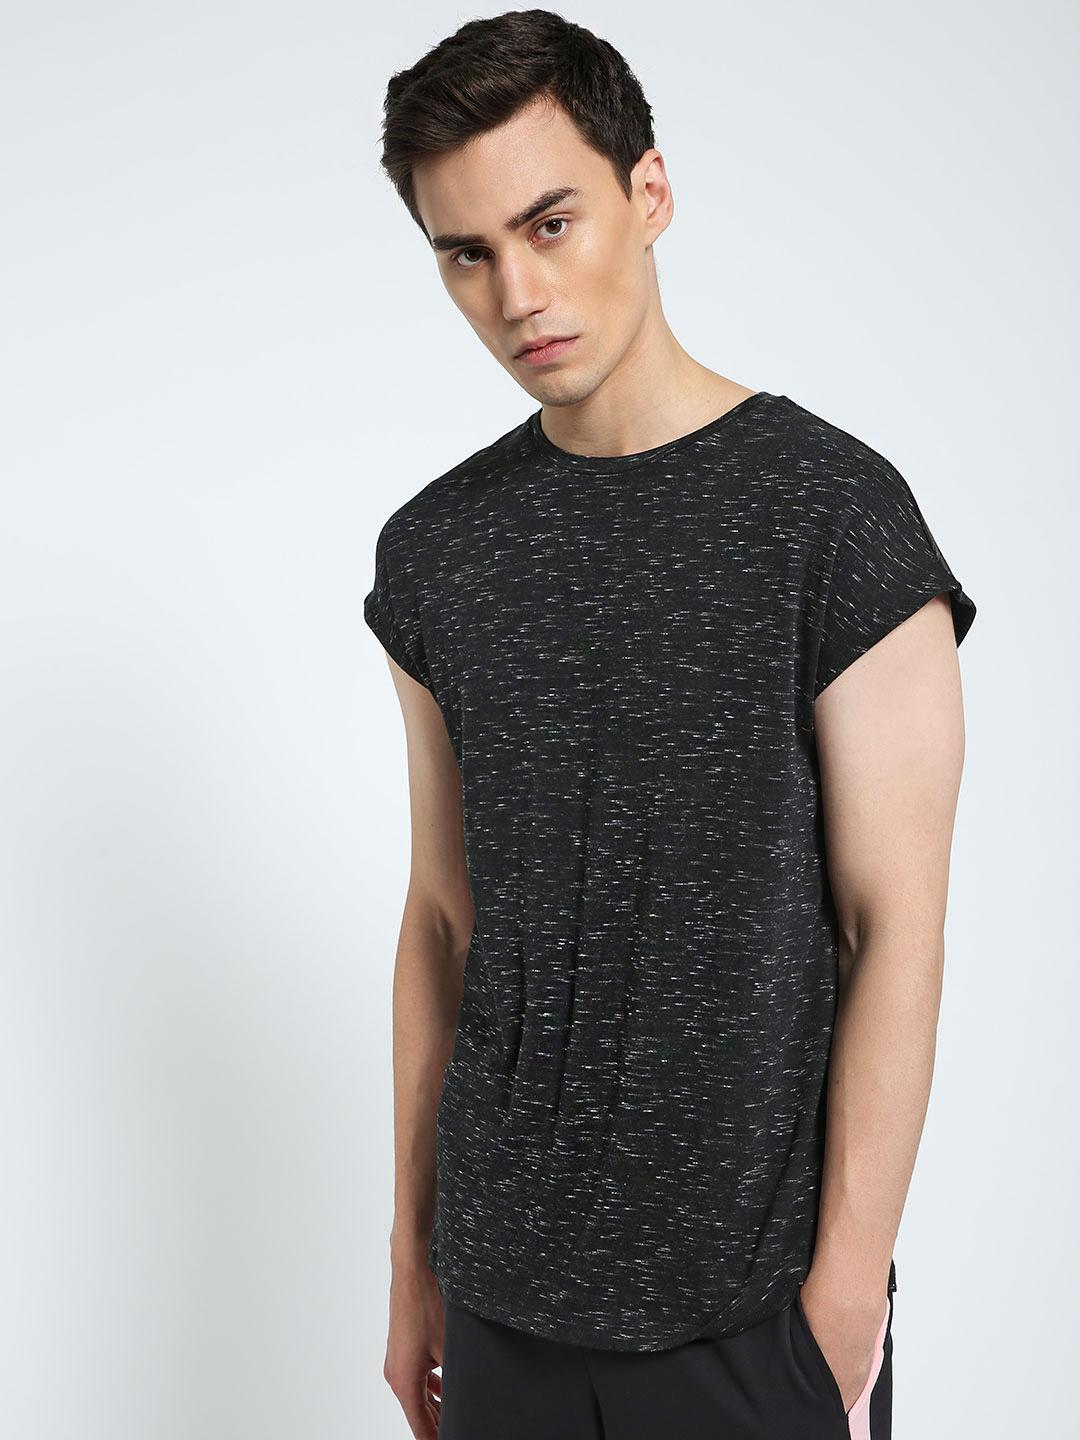 CHELSEA KING Charcoal Textured Crew Neck T-Shirt 1